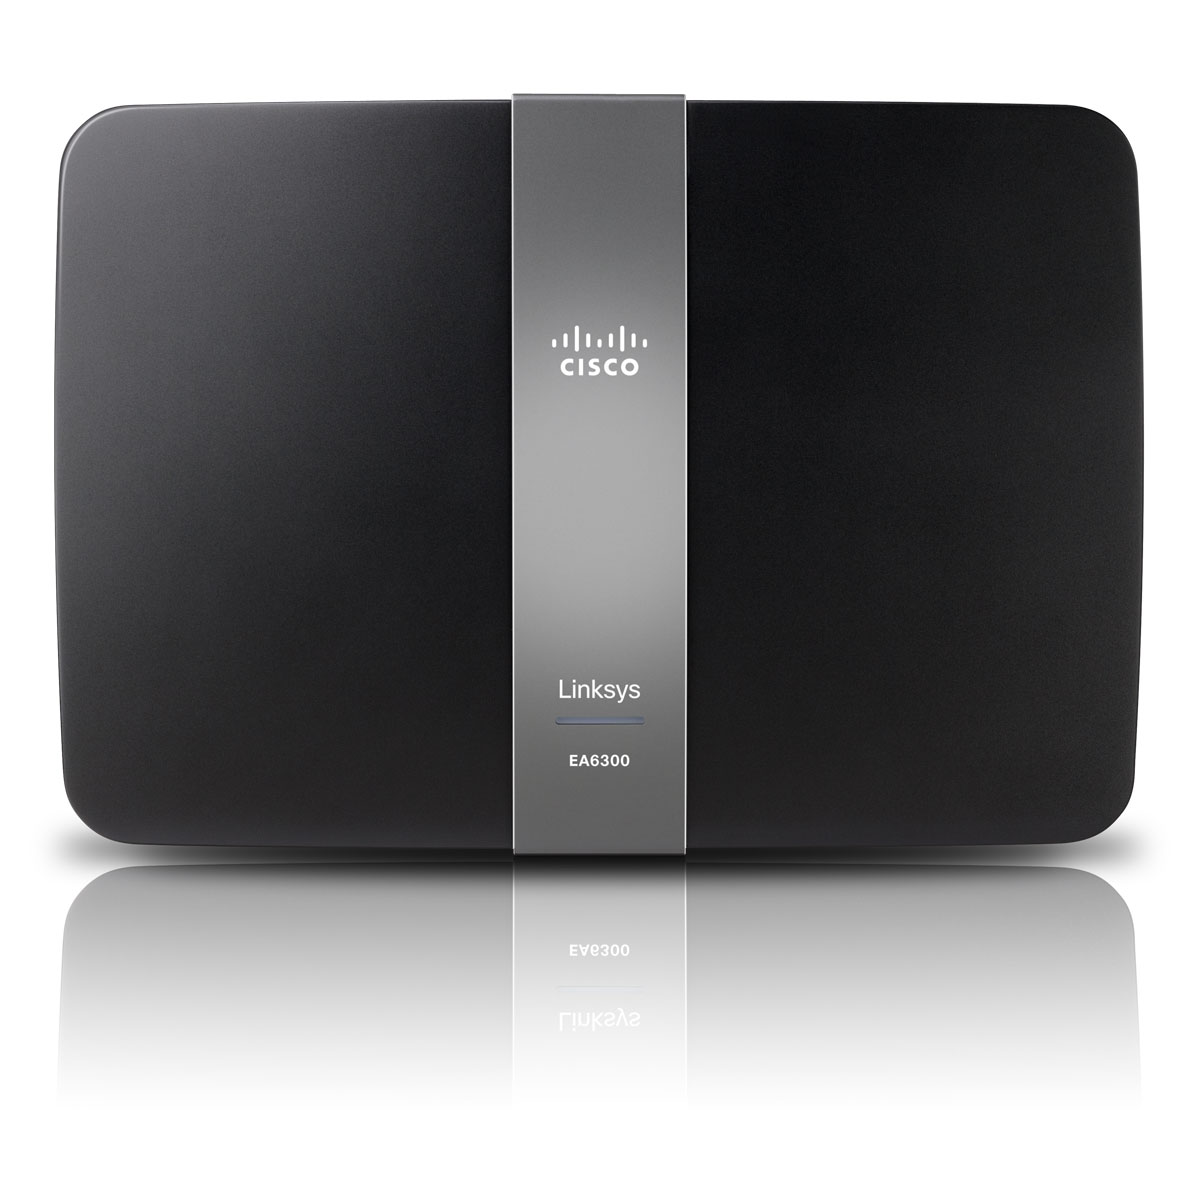 linksys ea6300 modem routeur linksys sur. Black Bedroom Furniture Sets. Home Design Ideas